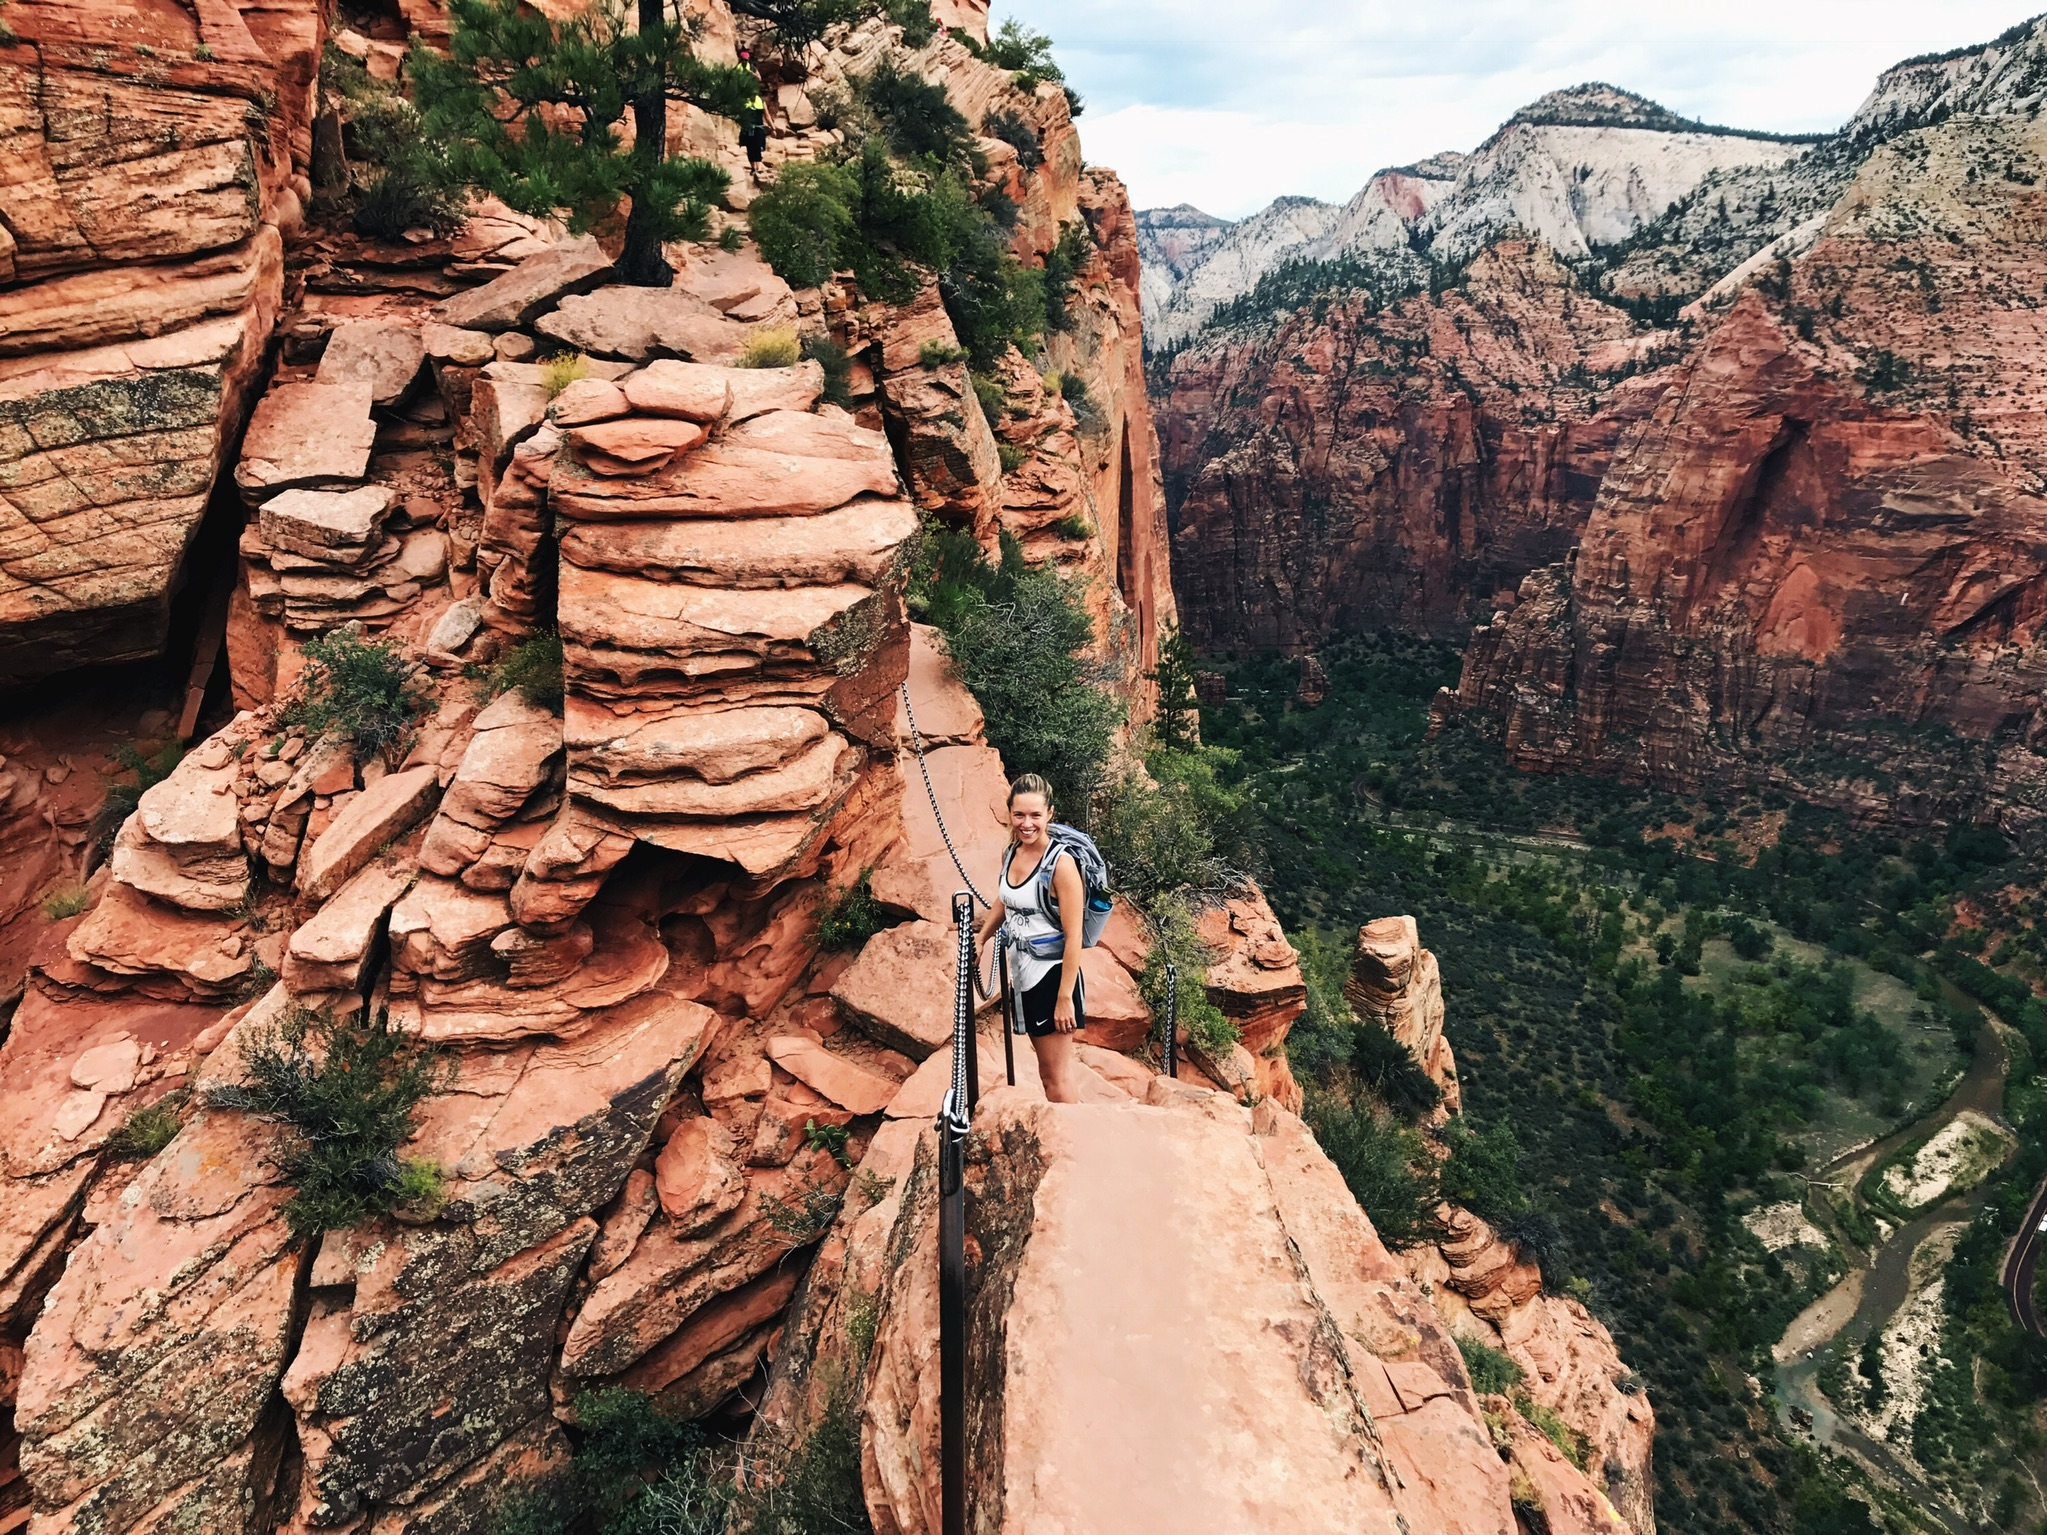 Smiling, only because I'm on my way back down from Angels Landing